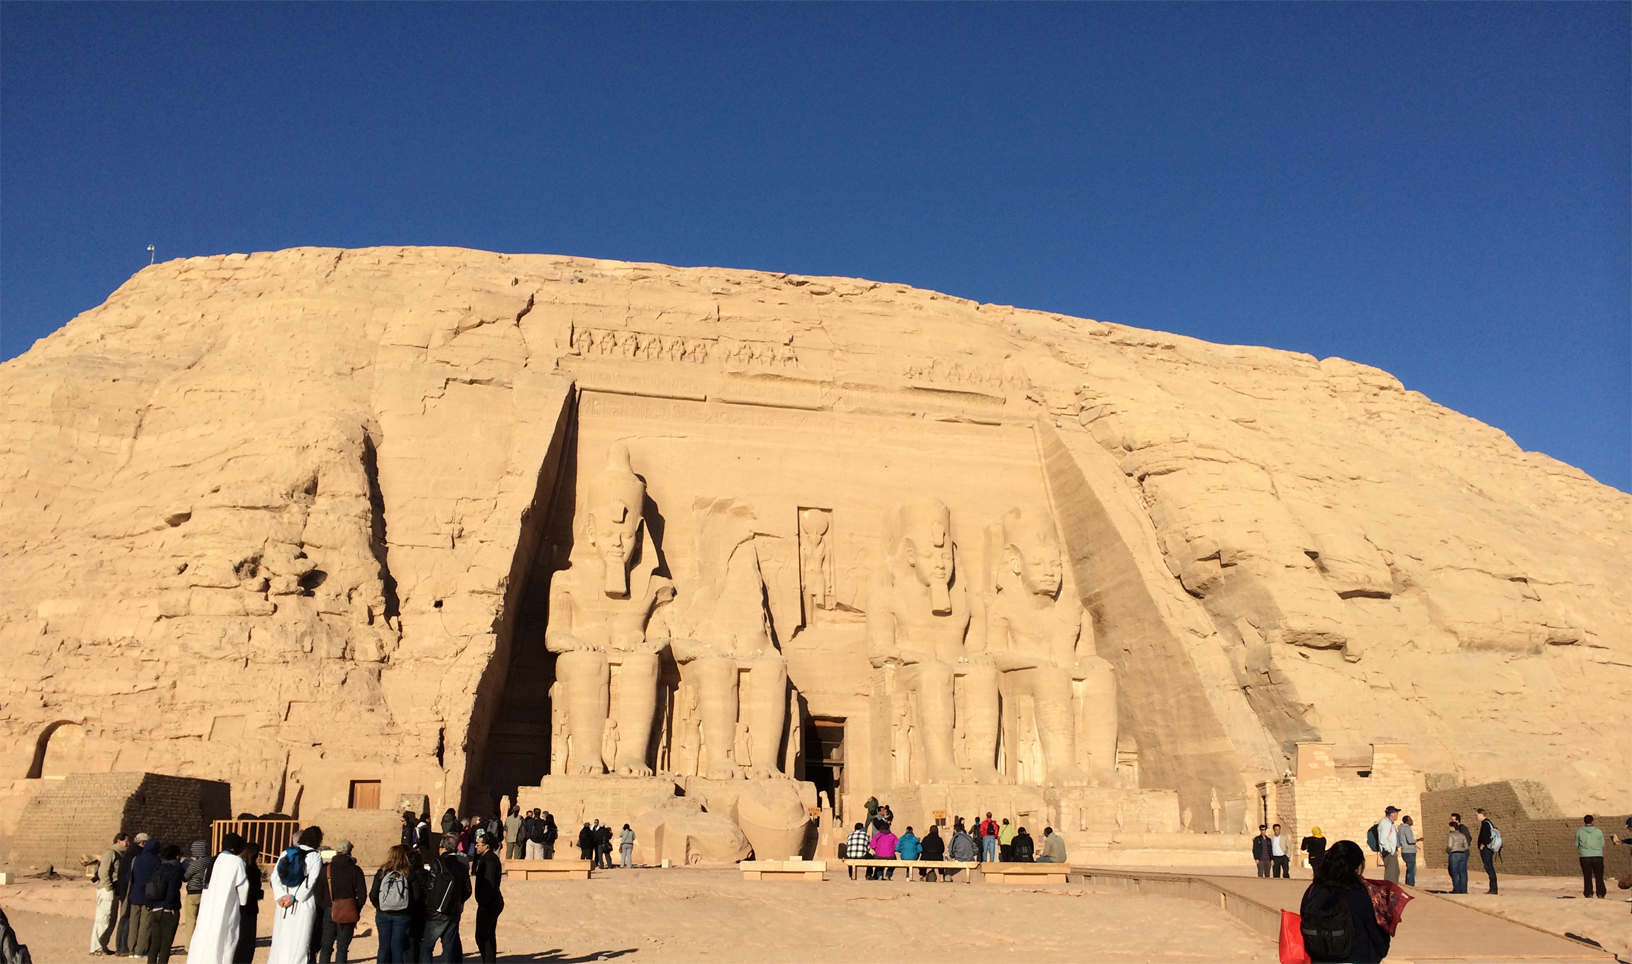 The Great Abu Simbel temple